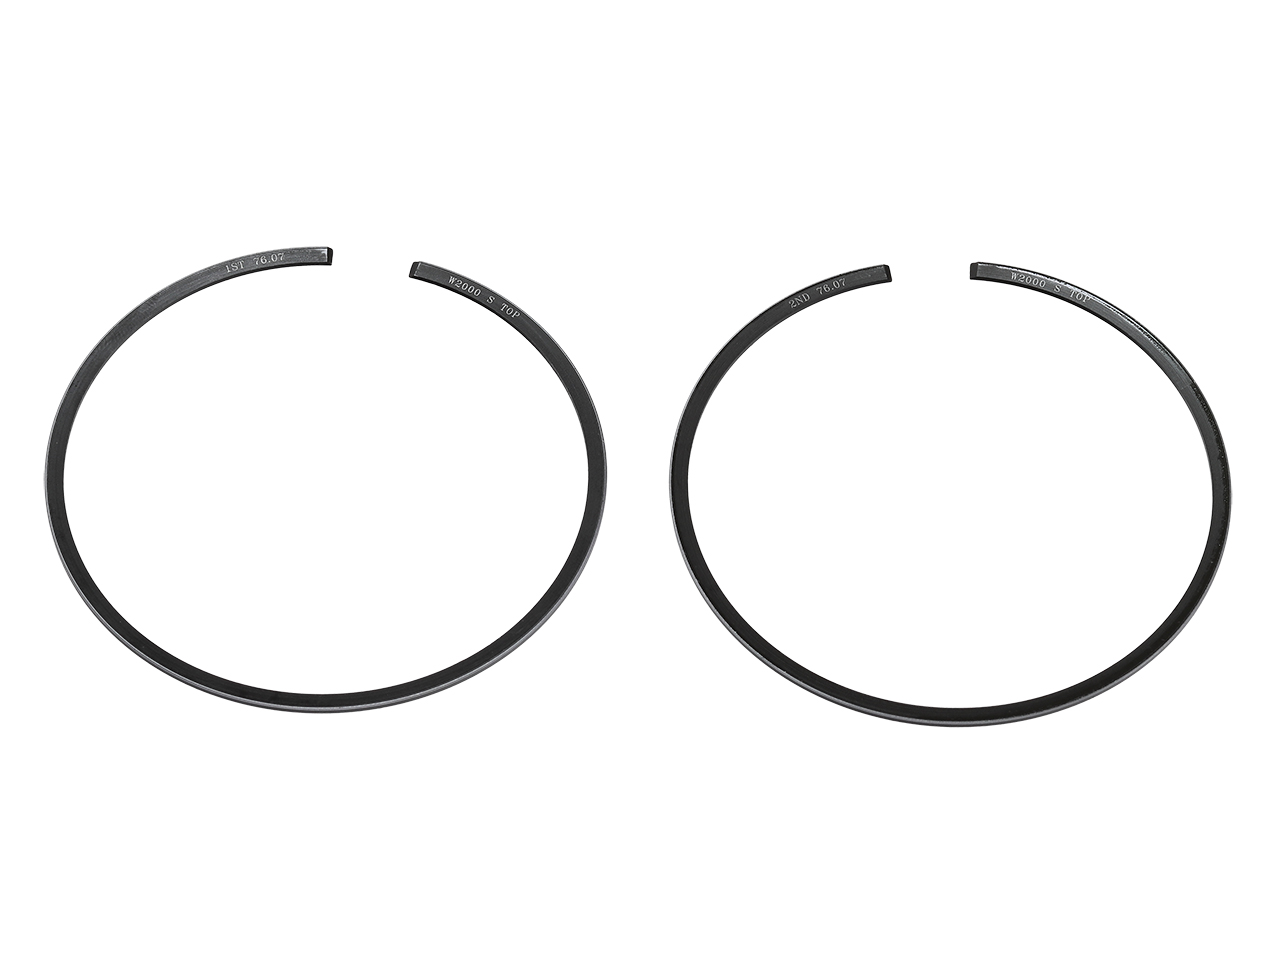 NAMURA PISTON RING NW-20000R